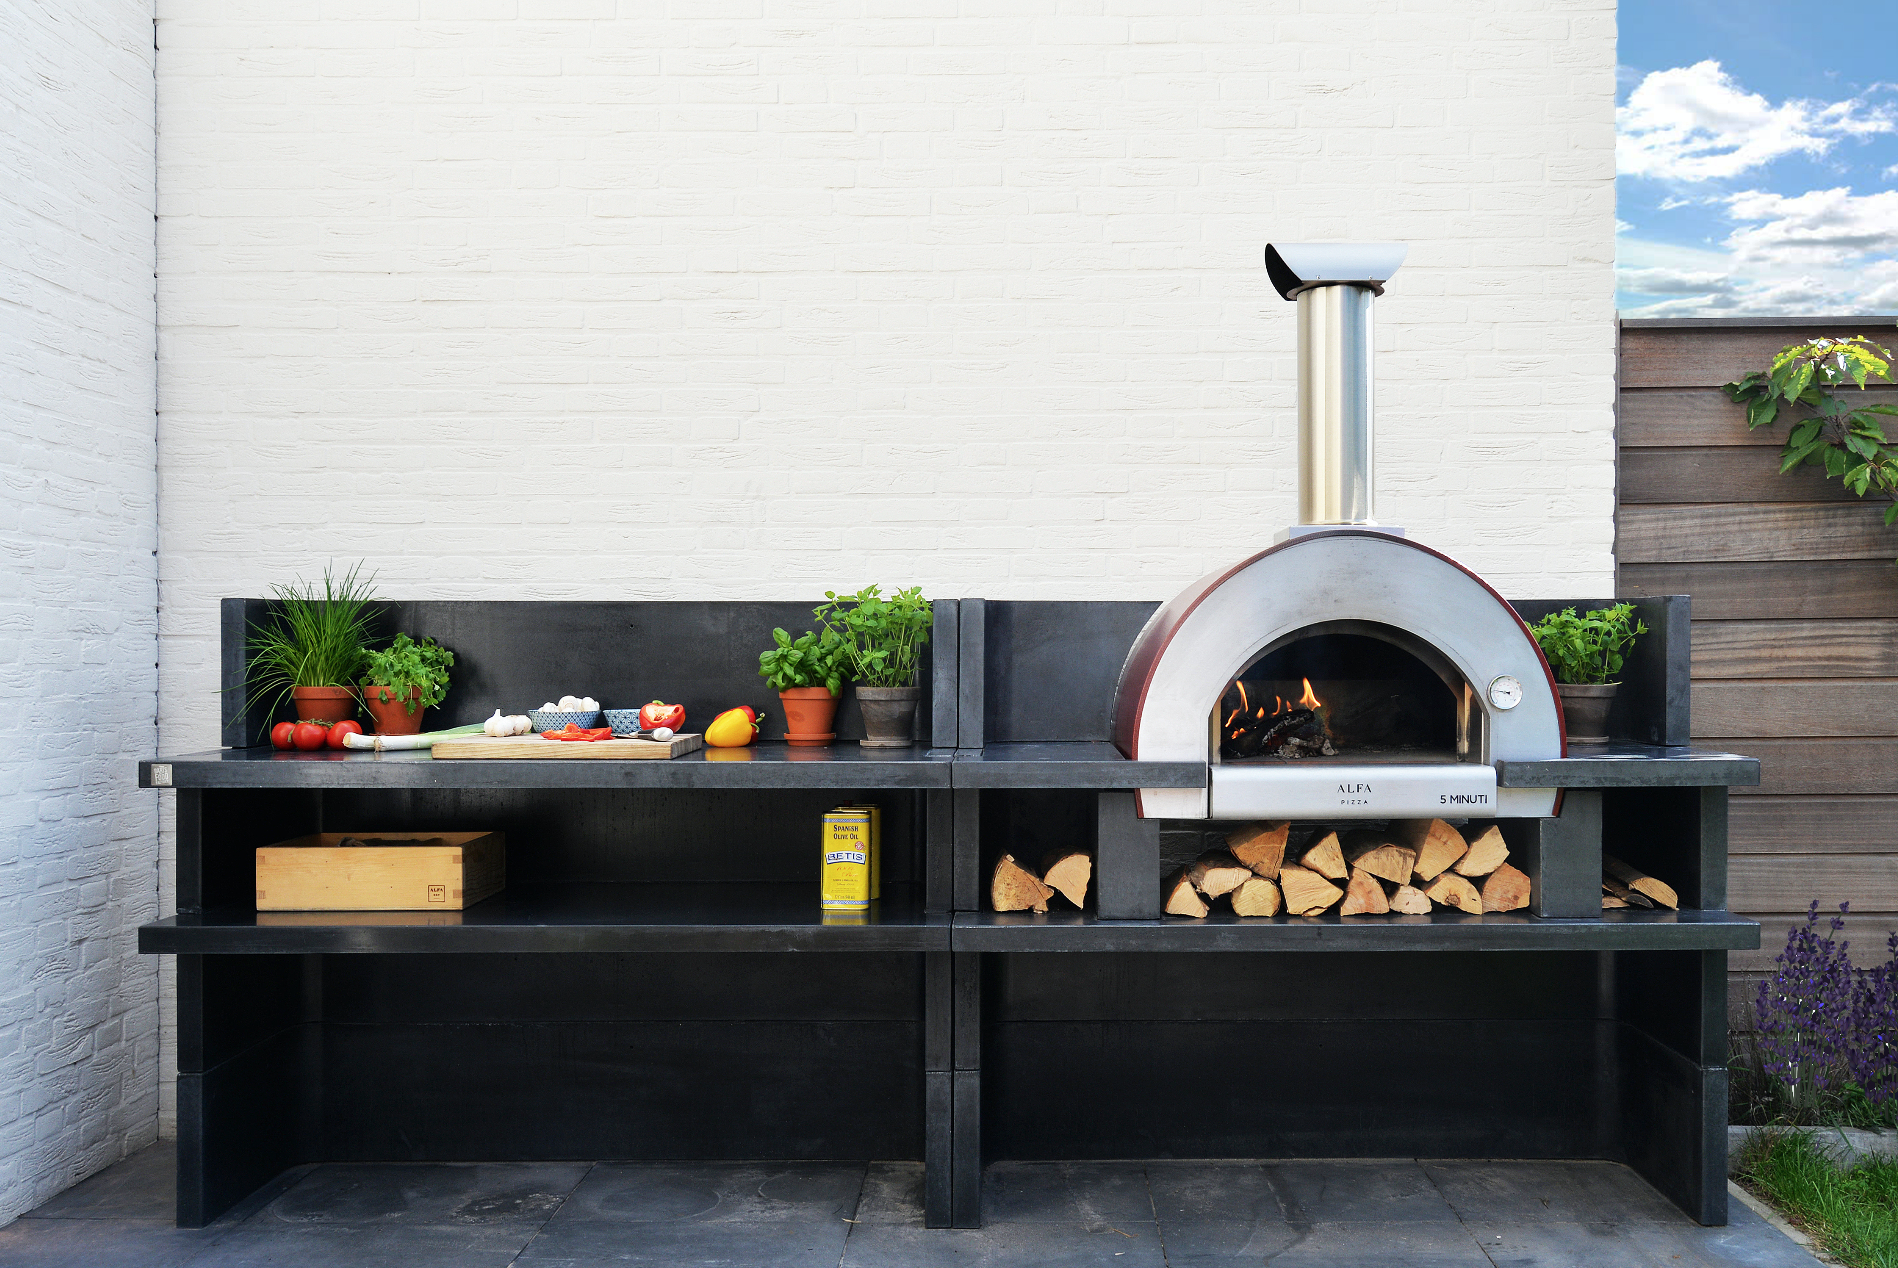 How to incorporate an Alfa into your outdoor kitchen | Alfa ...